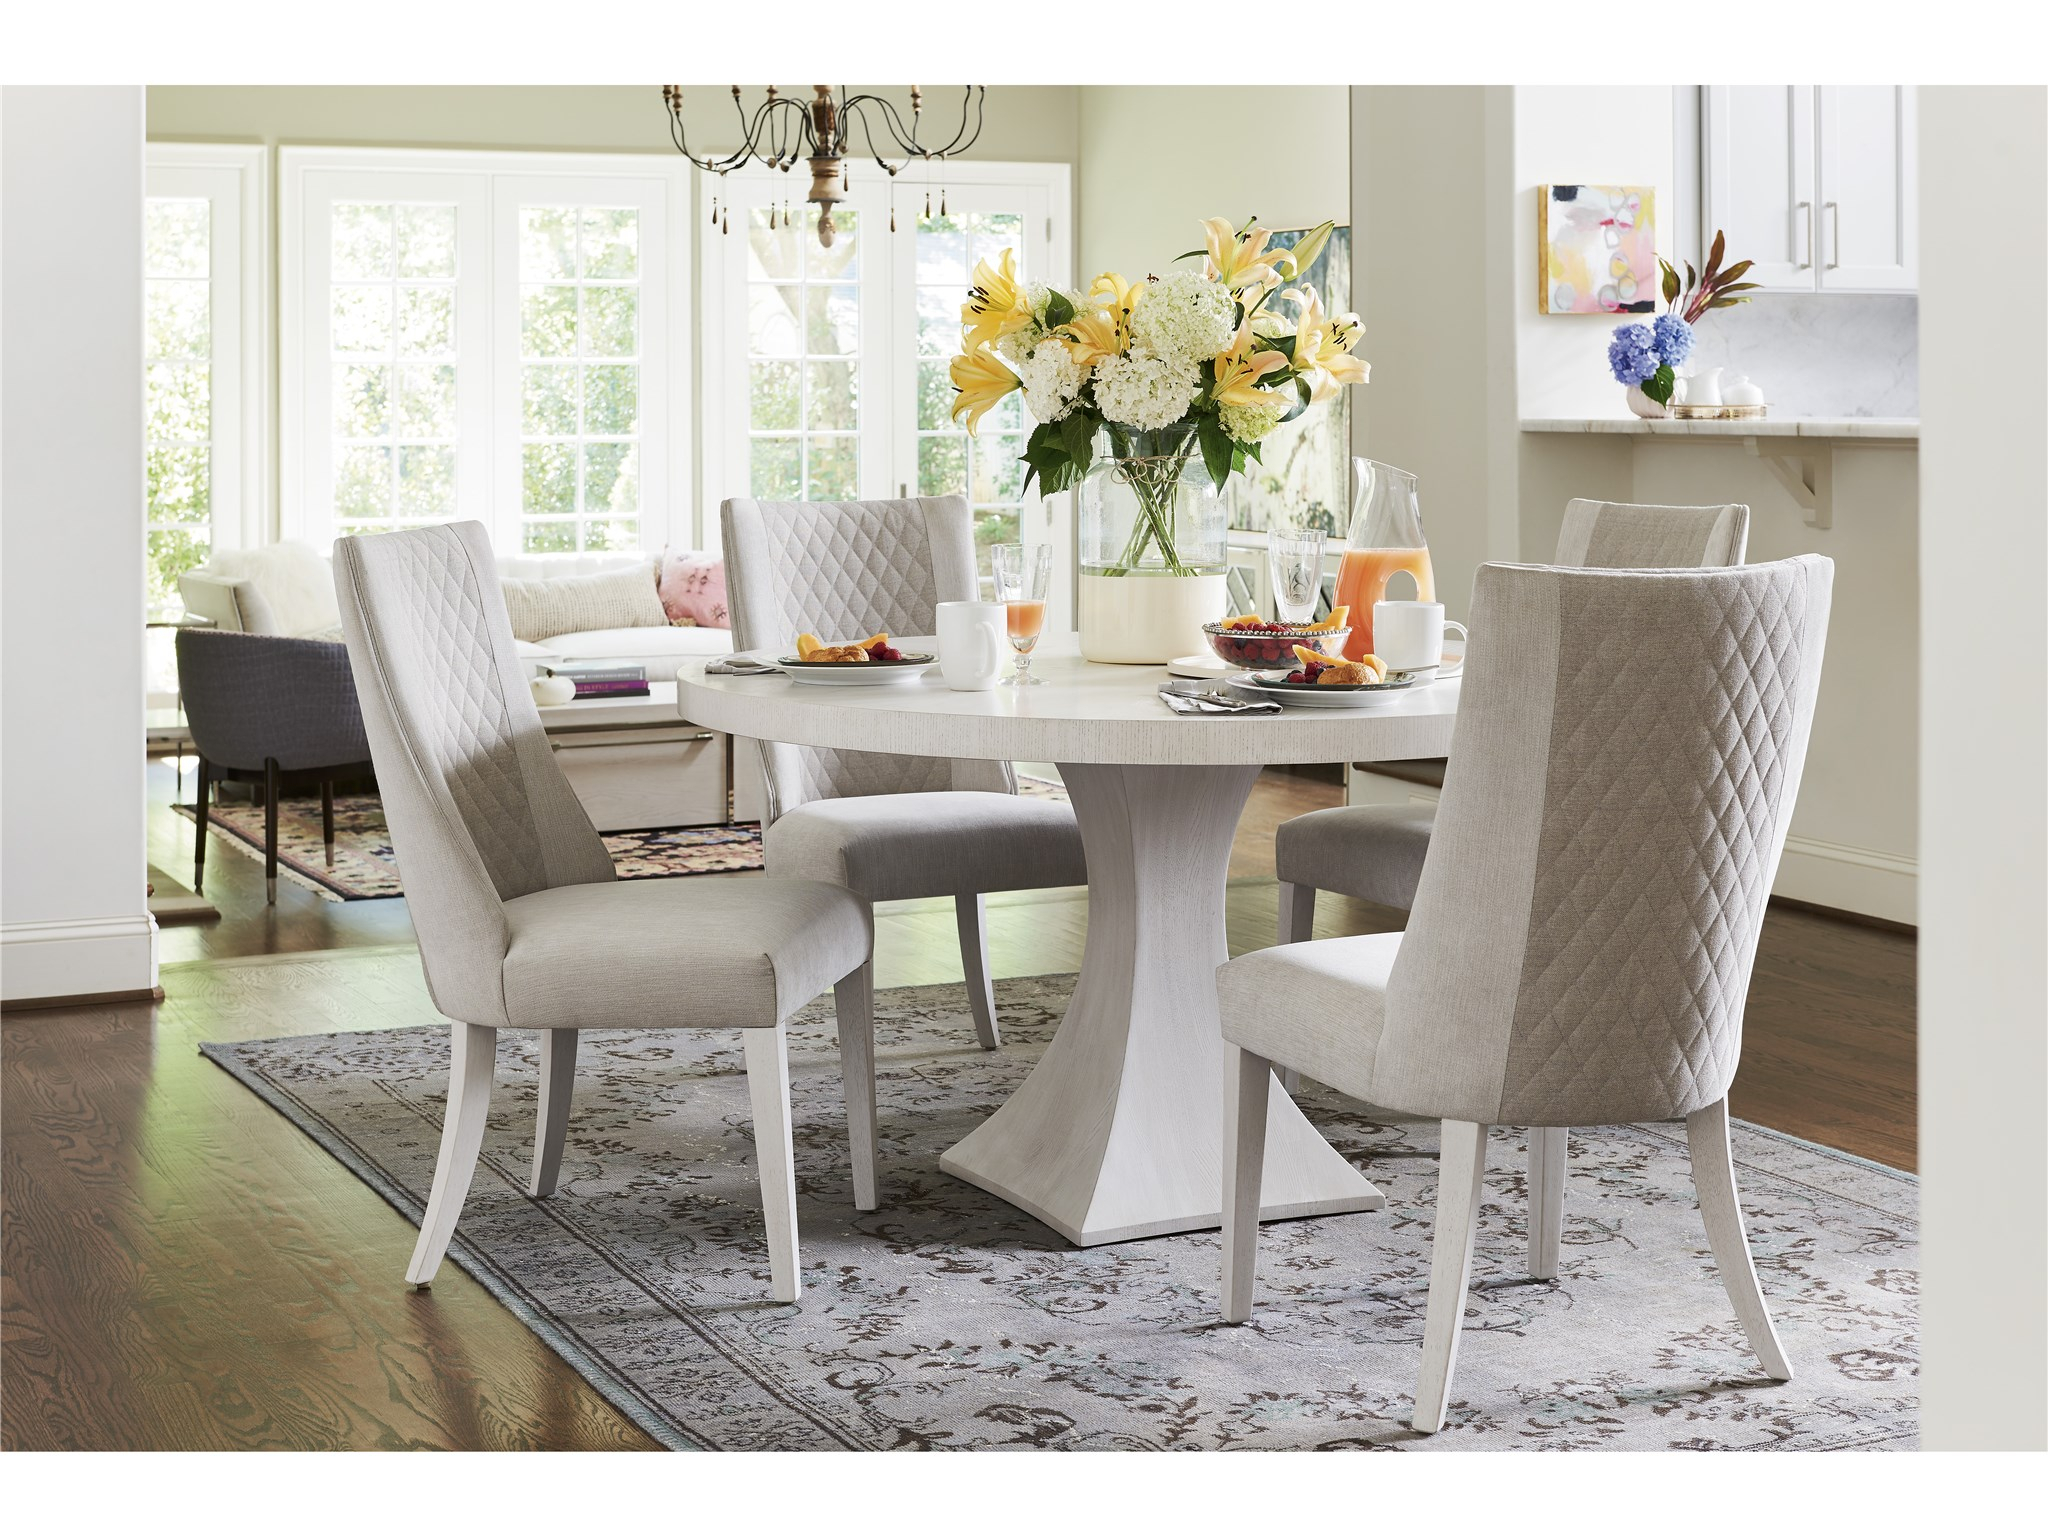 Paradox Integrity Dining Table | Universal Furniture With Most Recent Giles 3 Piece Dining Sets (Photo 2 of 20)